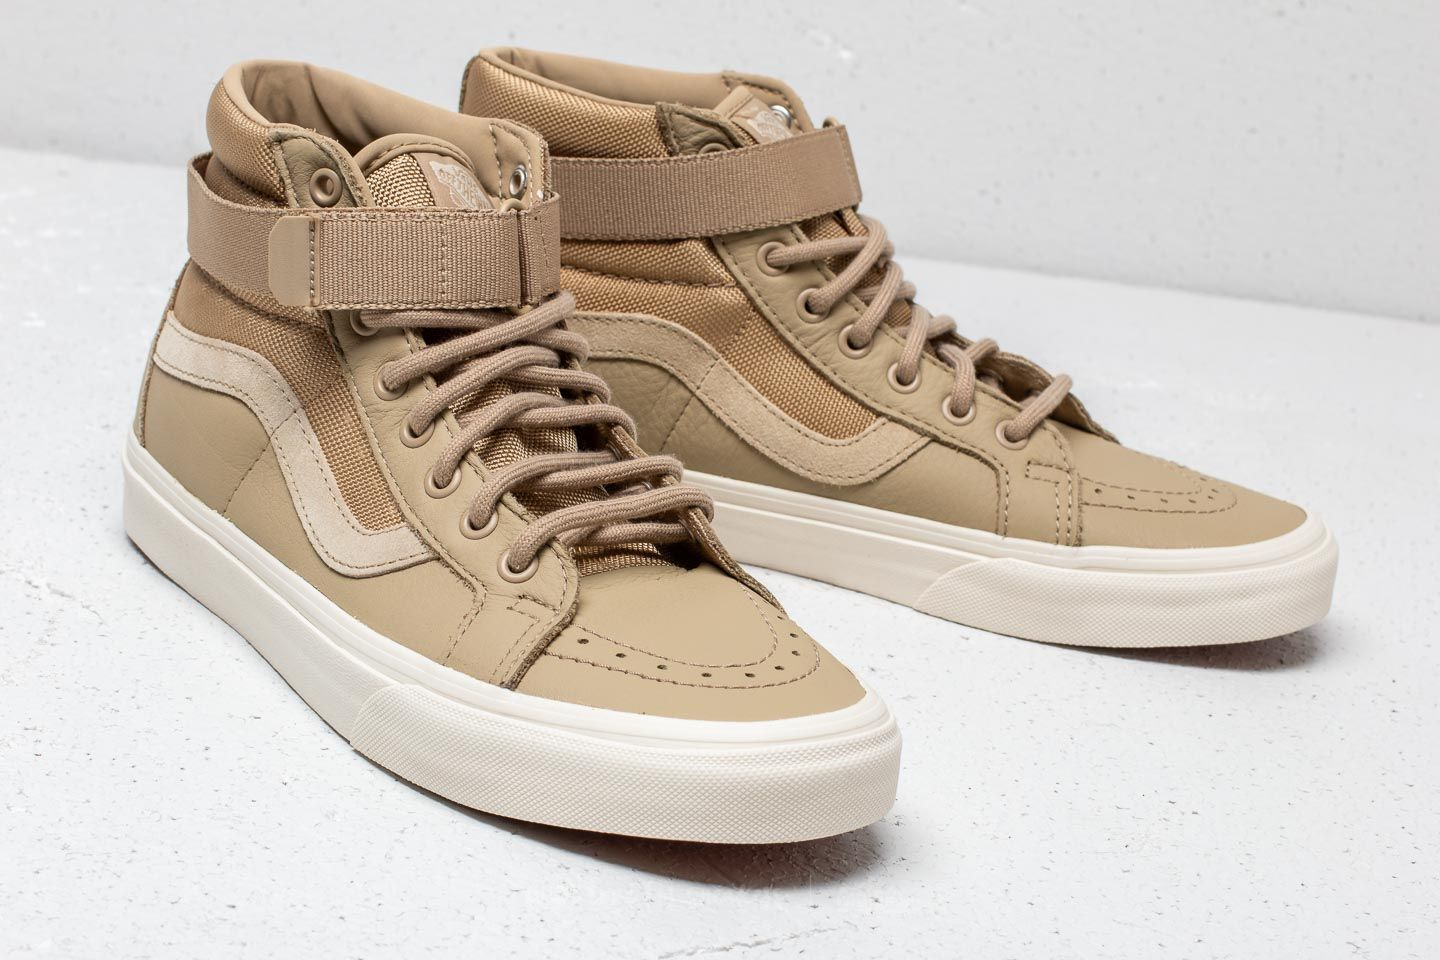 Vans Sk8-Hi Reissue Strap (Leather) Ballistic/ Cornstalk | Footshop